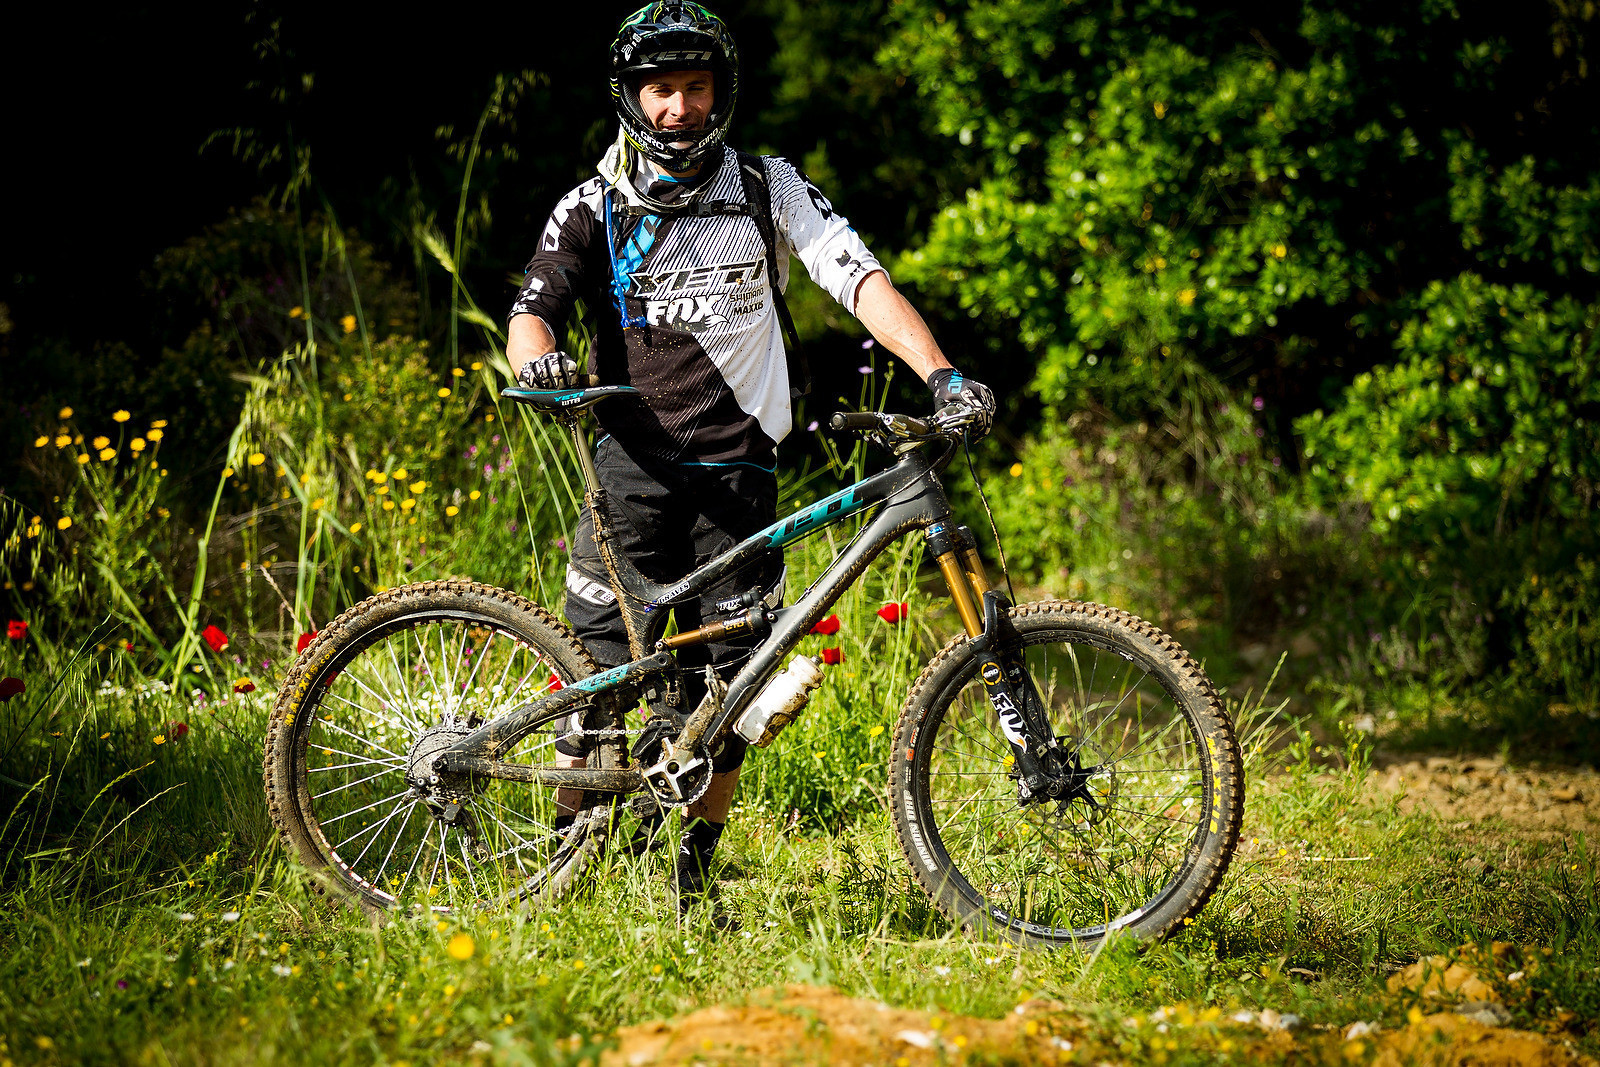 Jared Graves to Ride Yeti SB66 at 2013 DH World Champs - World Championships Bikes and Gear 2013 - Mountain Biking Pictures - Vital MTB